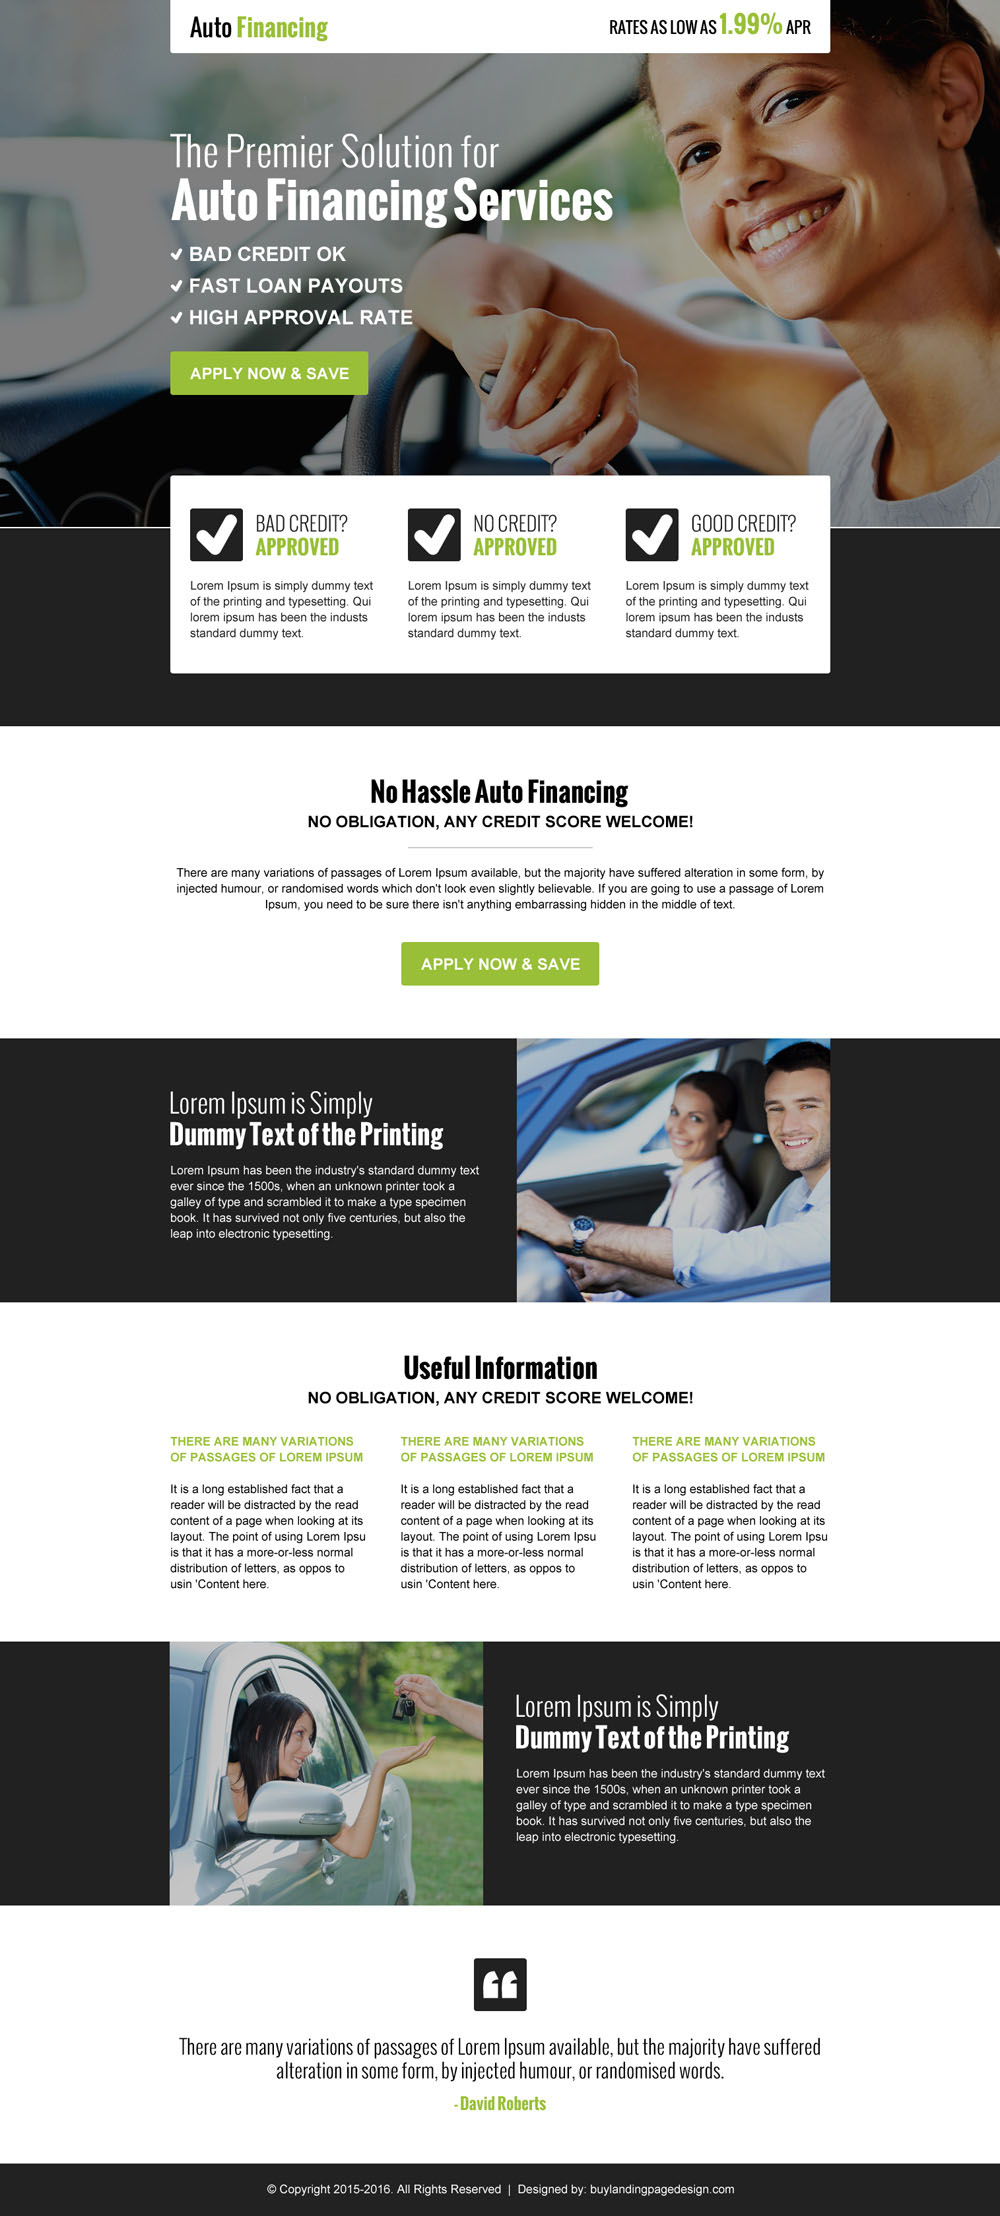 auto-financing-business-service-converting-landing-page-design-002